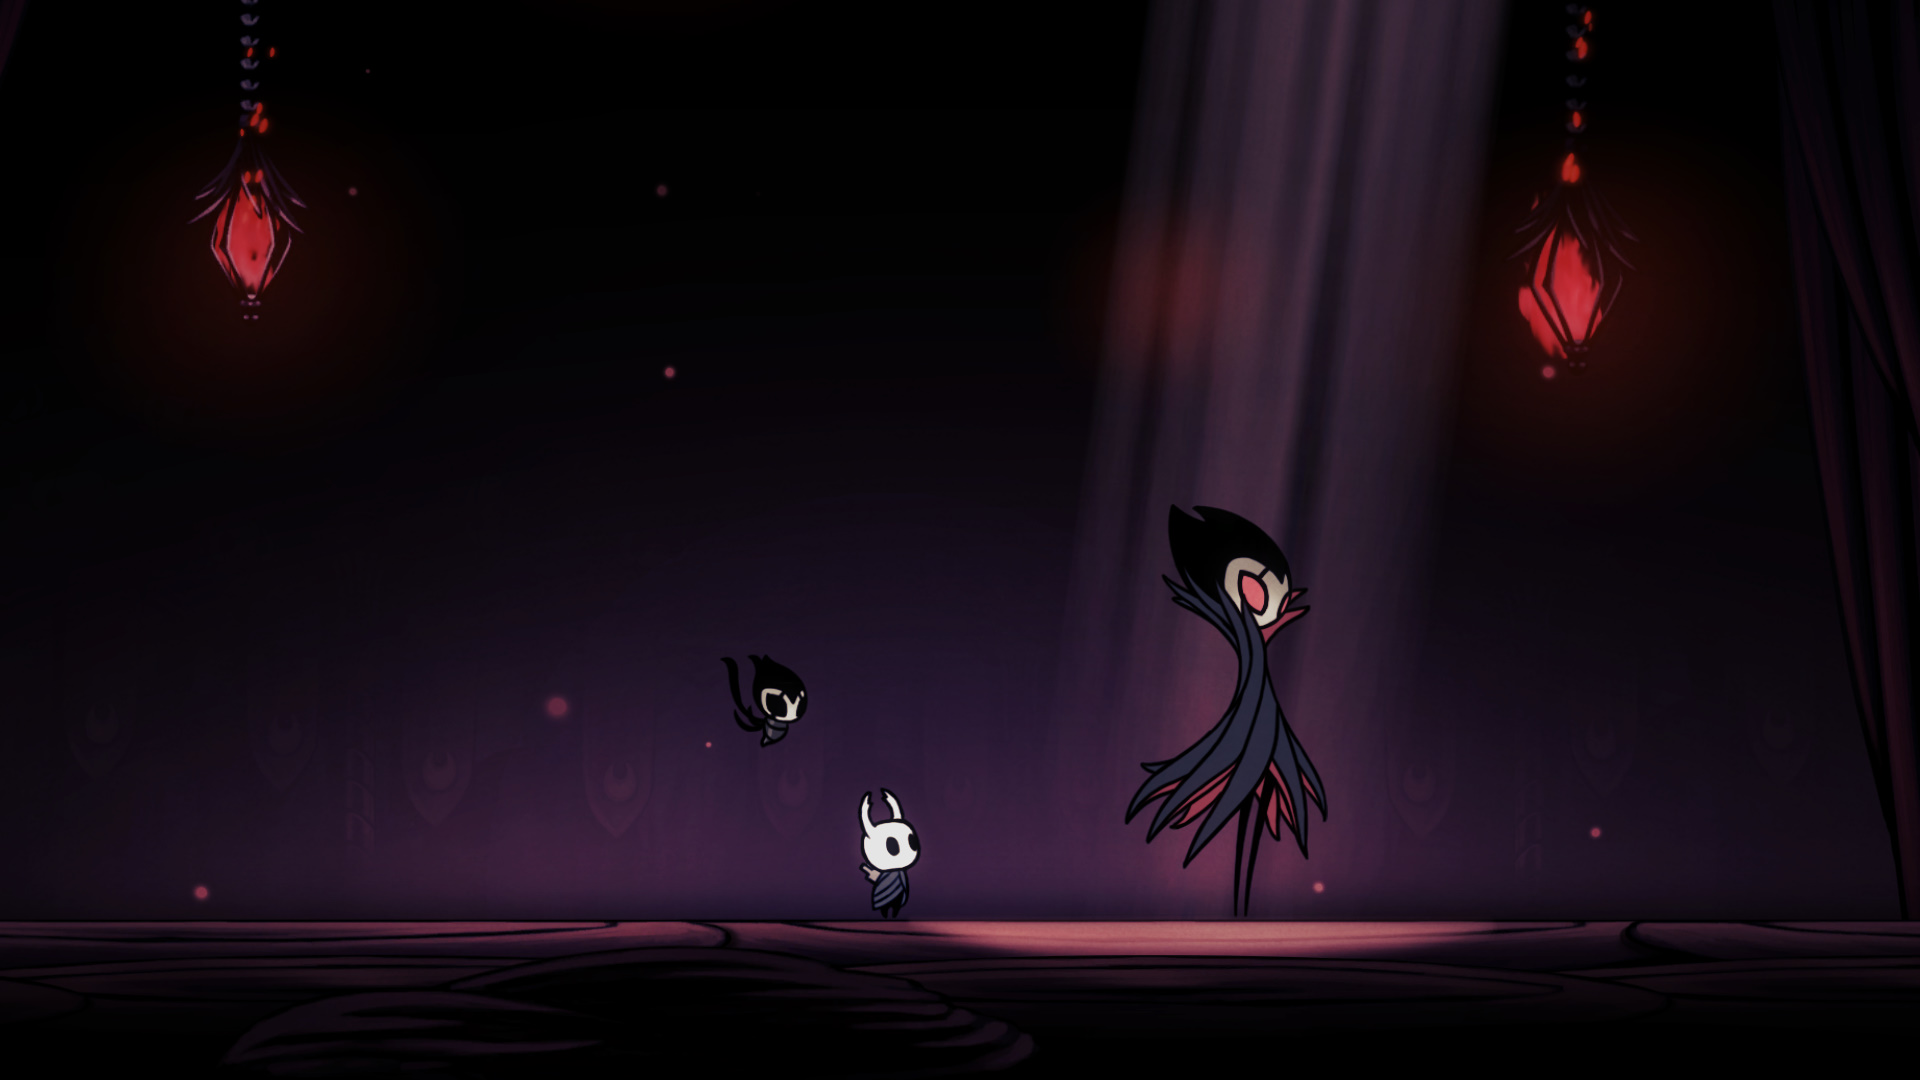 21 Hollow Knight The Grimm Troupe Wallpapers On Wallpapersafari